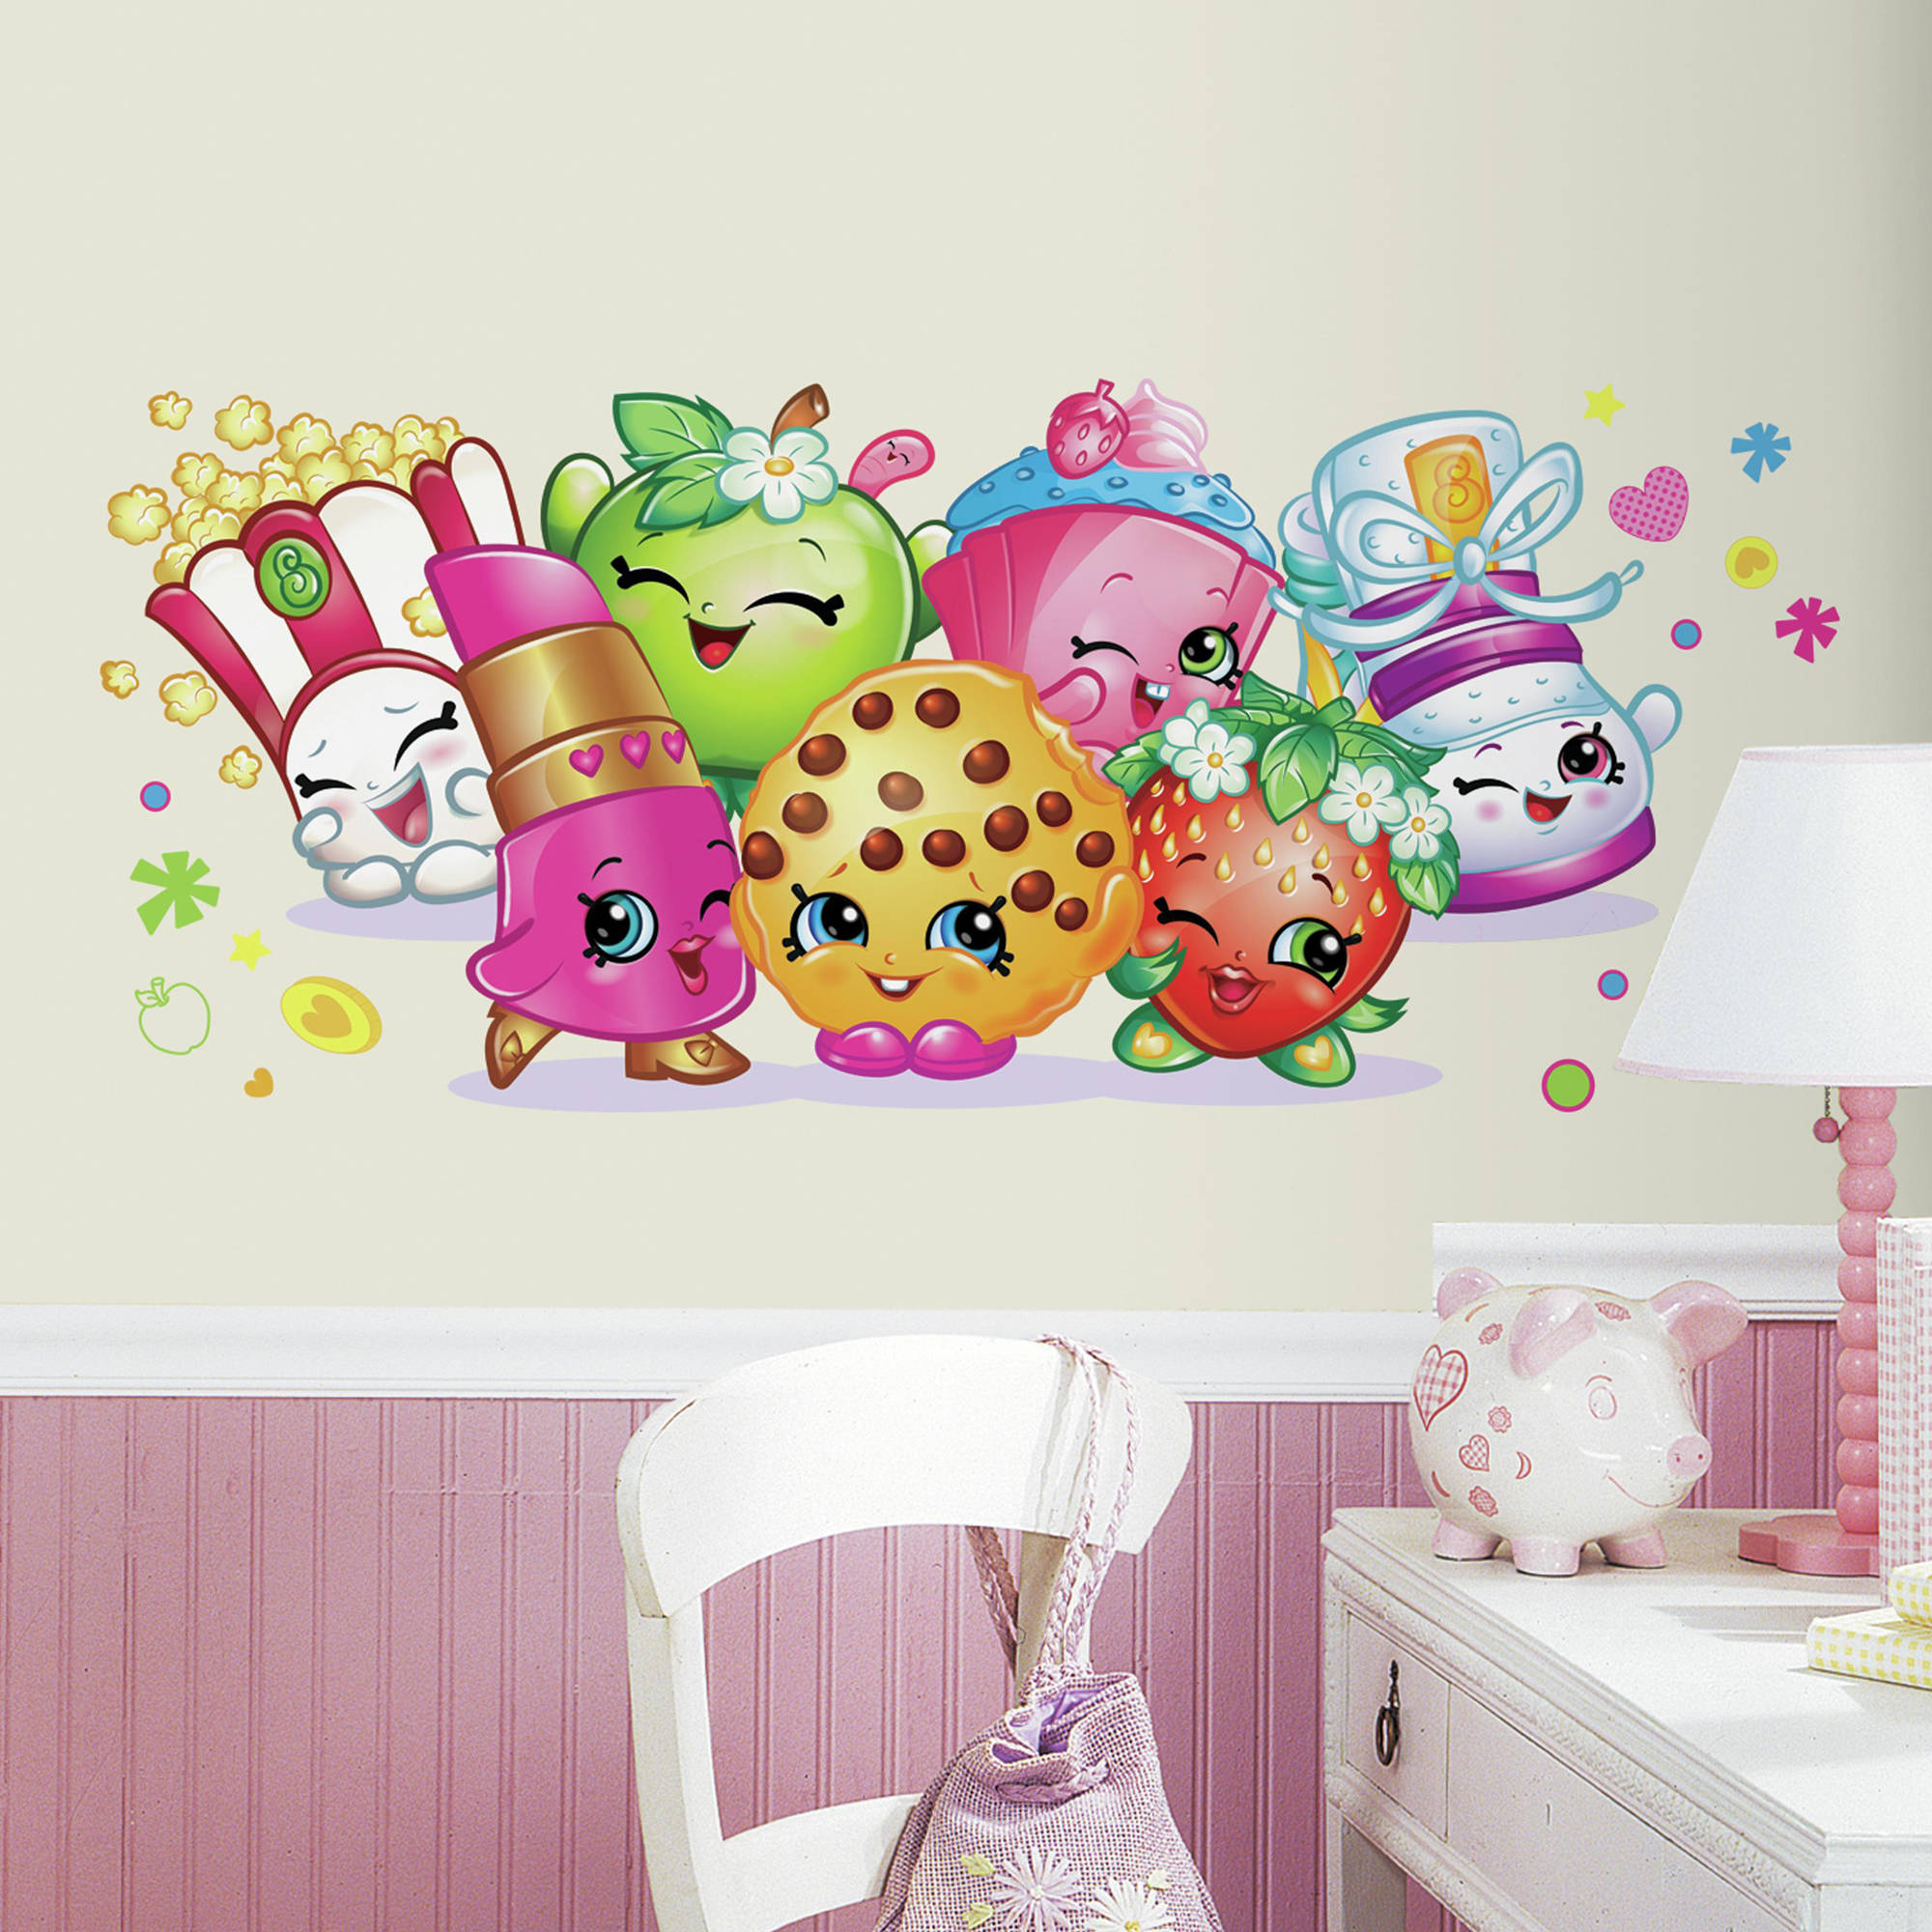 Roommates shopkins burst peel and stick giant wall decals roommates shopkins burst peel and stick giant wall decals walmart amipublicfo Gallery